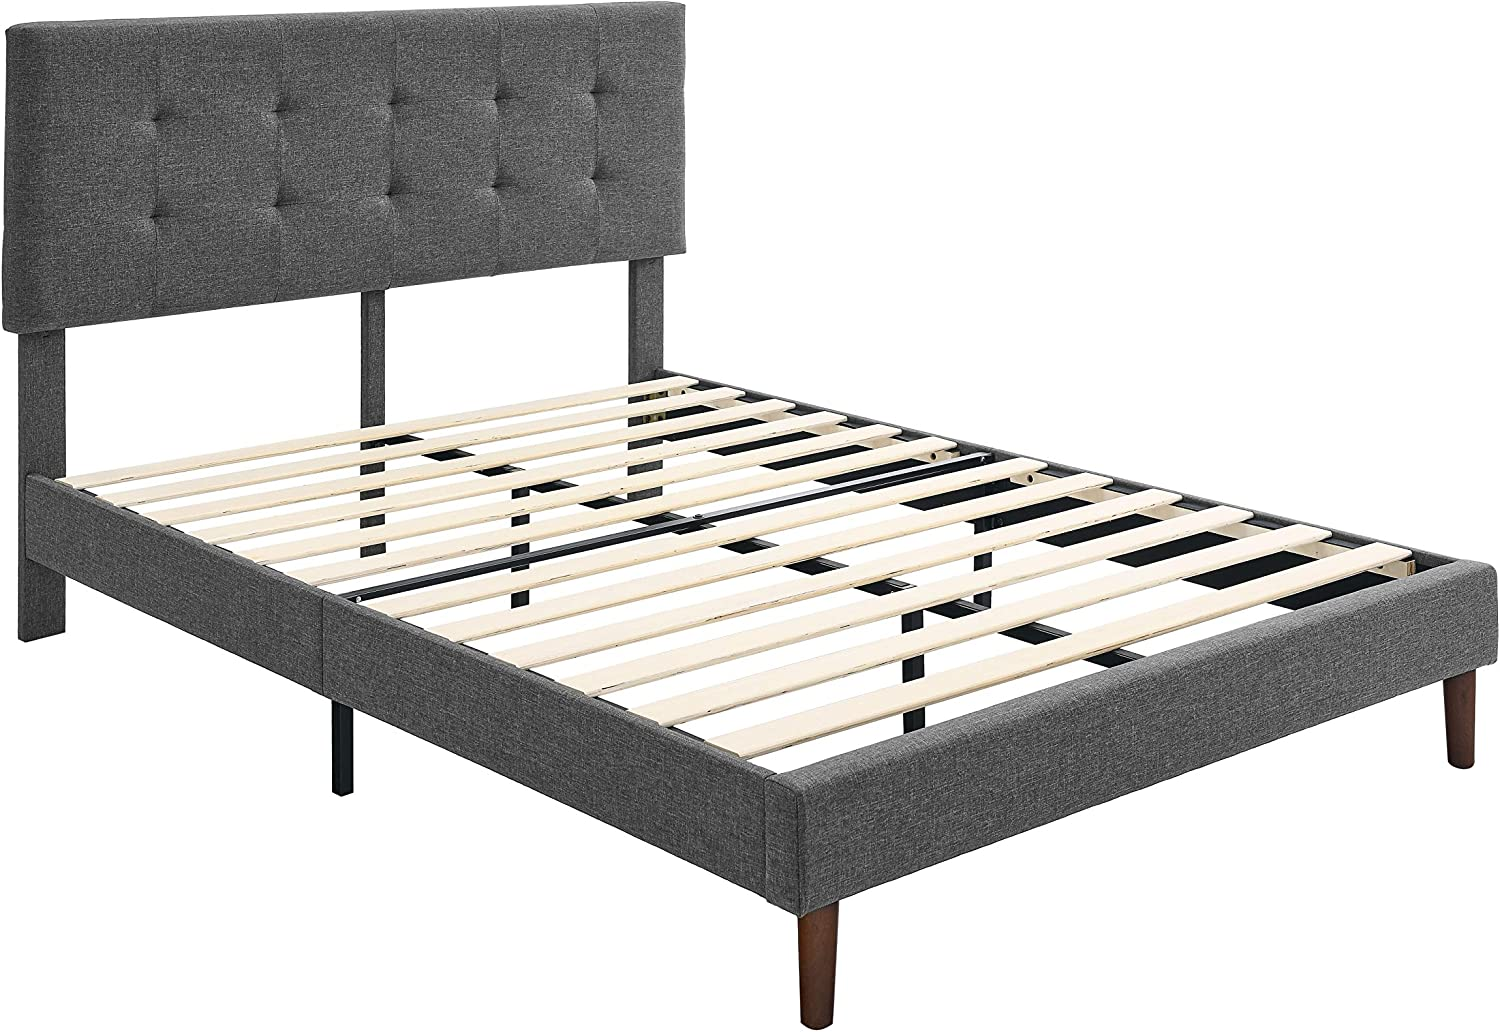 AmazonBasics Faux-Linen Upholstered Square Stitched Platform Bed - Mattress Foundation - Easy Assembly - Strong Wood Slat Support-Dark Grey, Twin